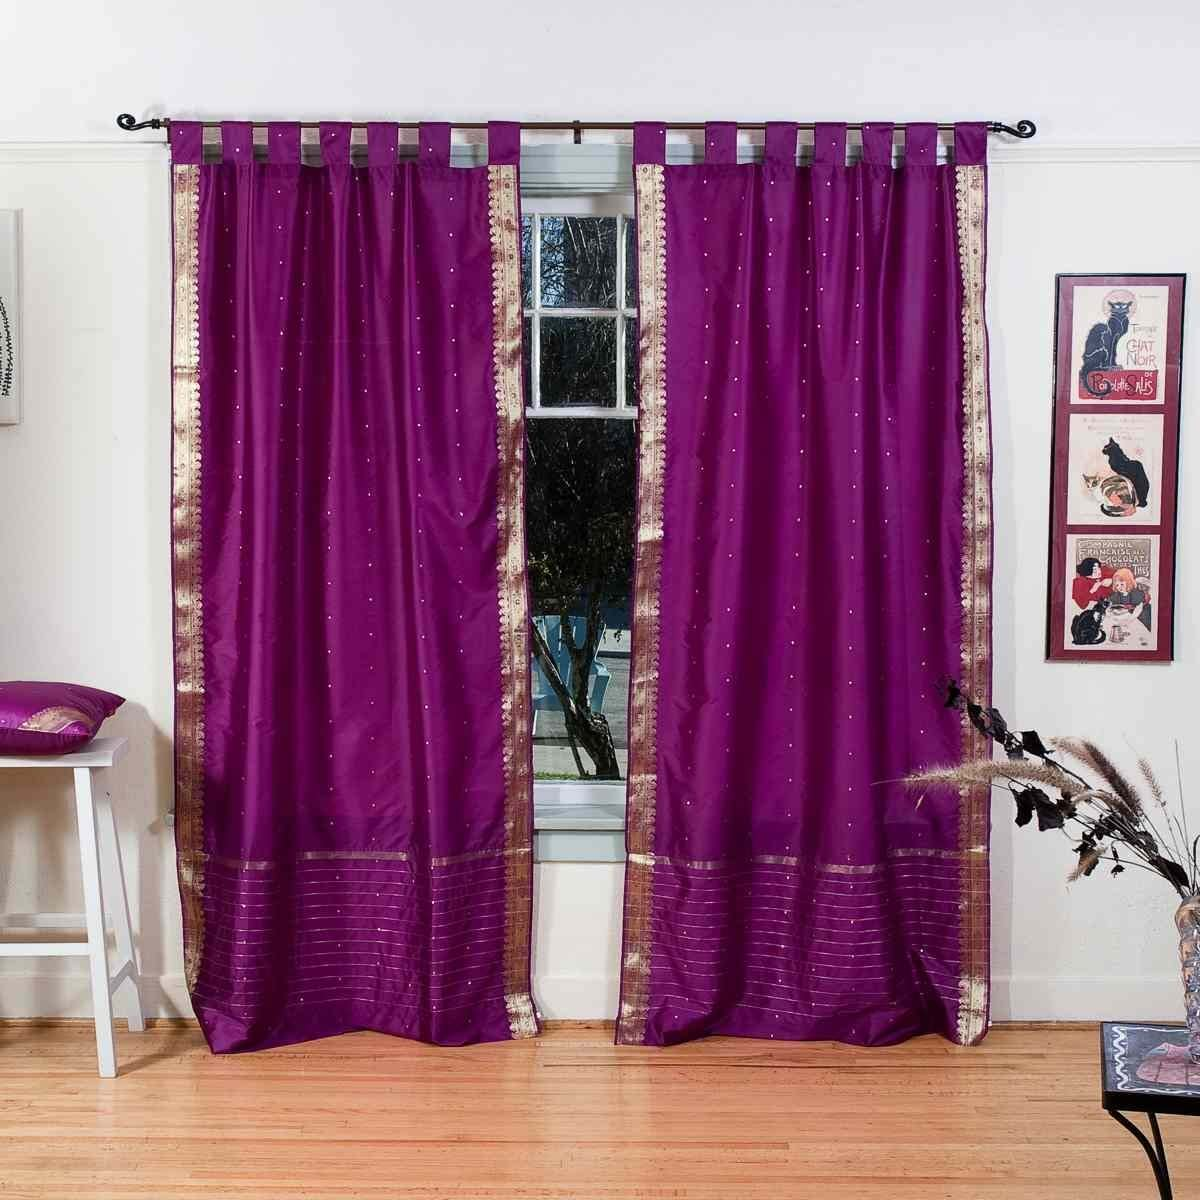 Indian Selections Lined-Violet Red Tab Top Sheer Sari Curtain Drape – 80W x 120L – Piece